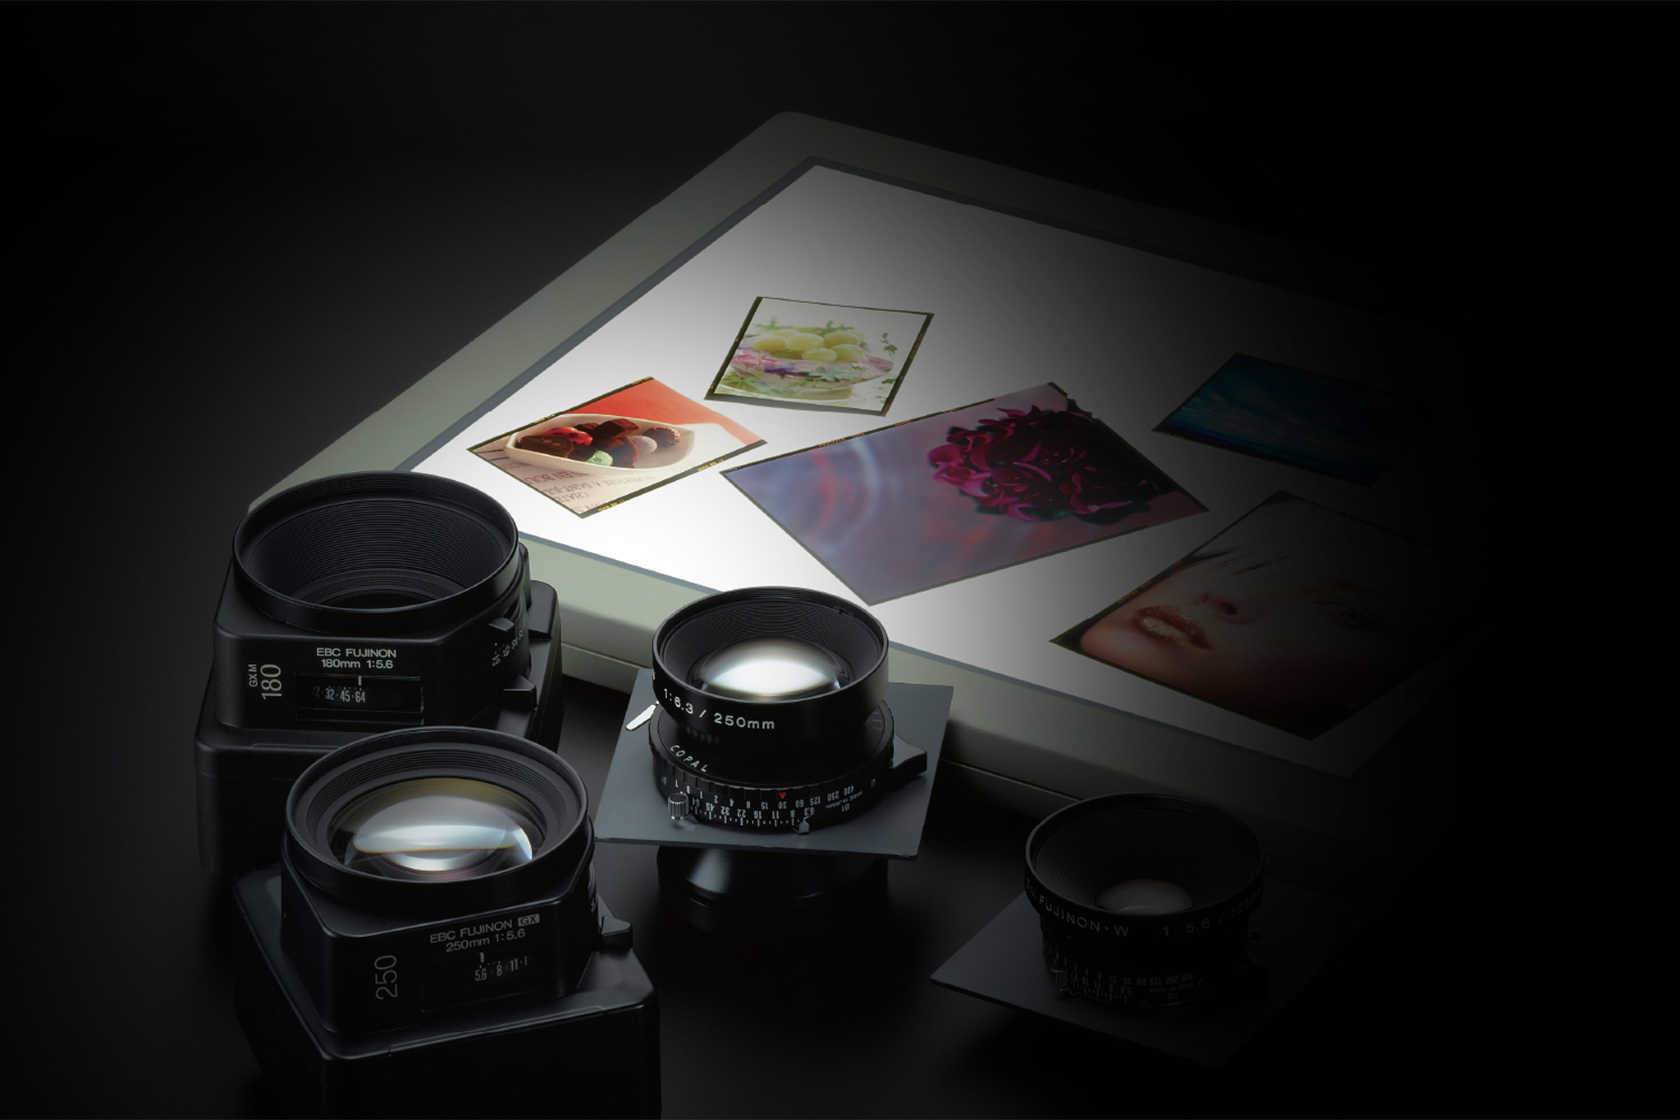 [photo] Assorted Fujifilm GFX Systems lenses with a collage of pictures in a picture frame